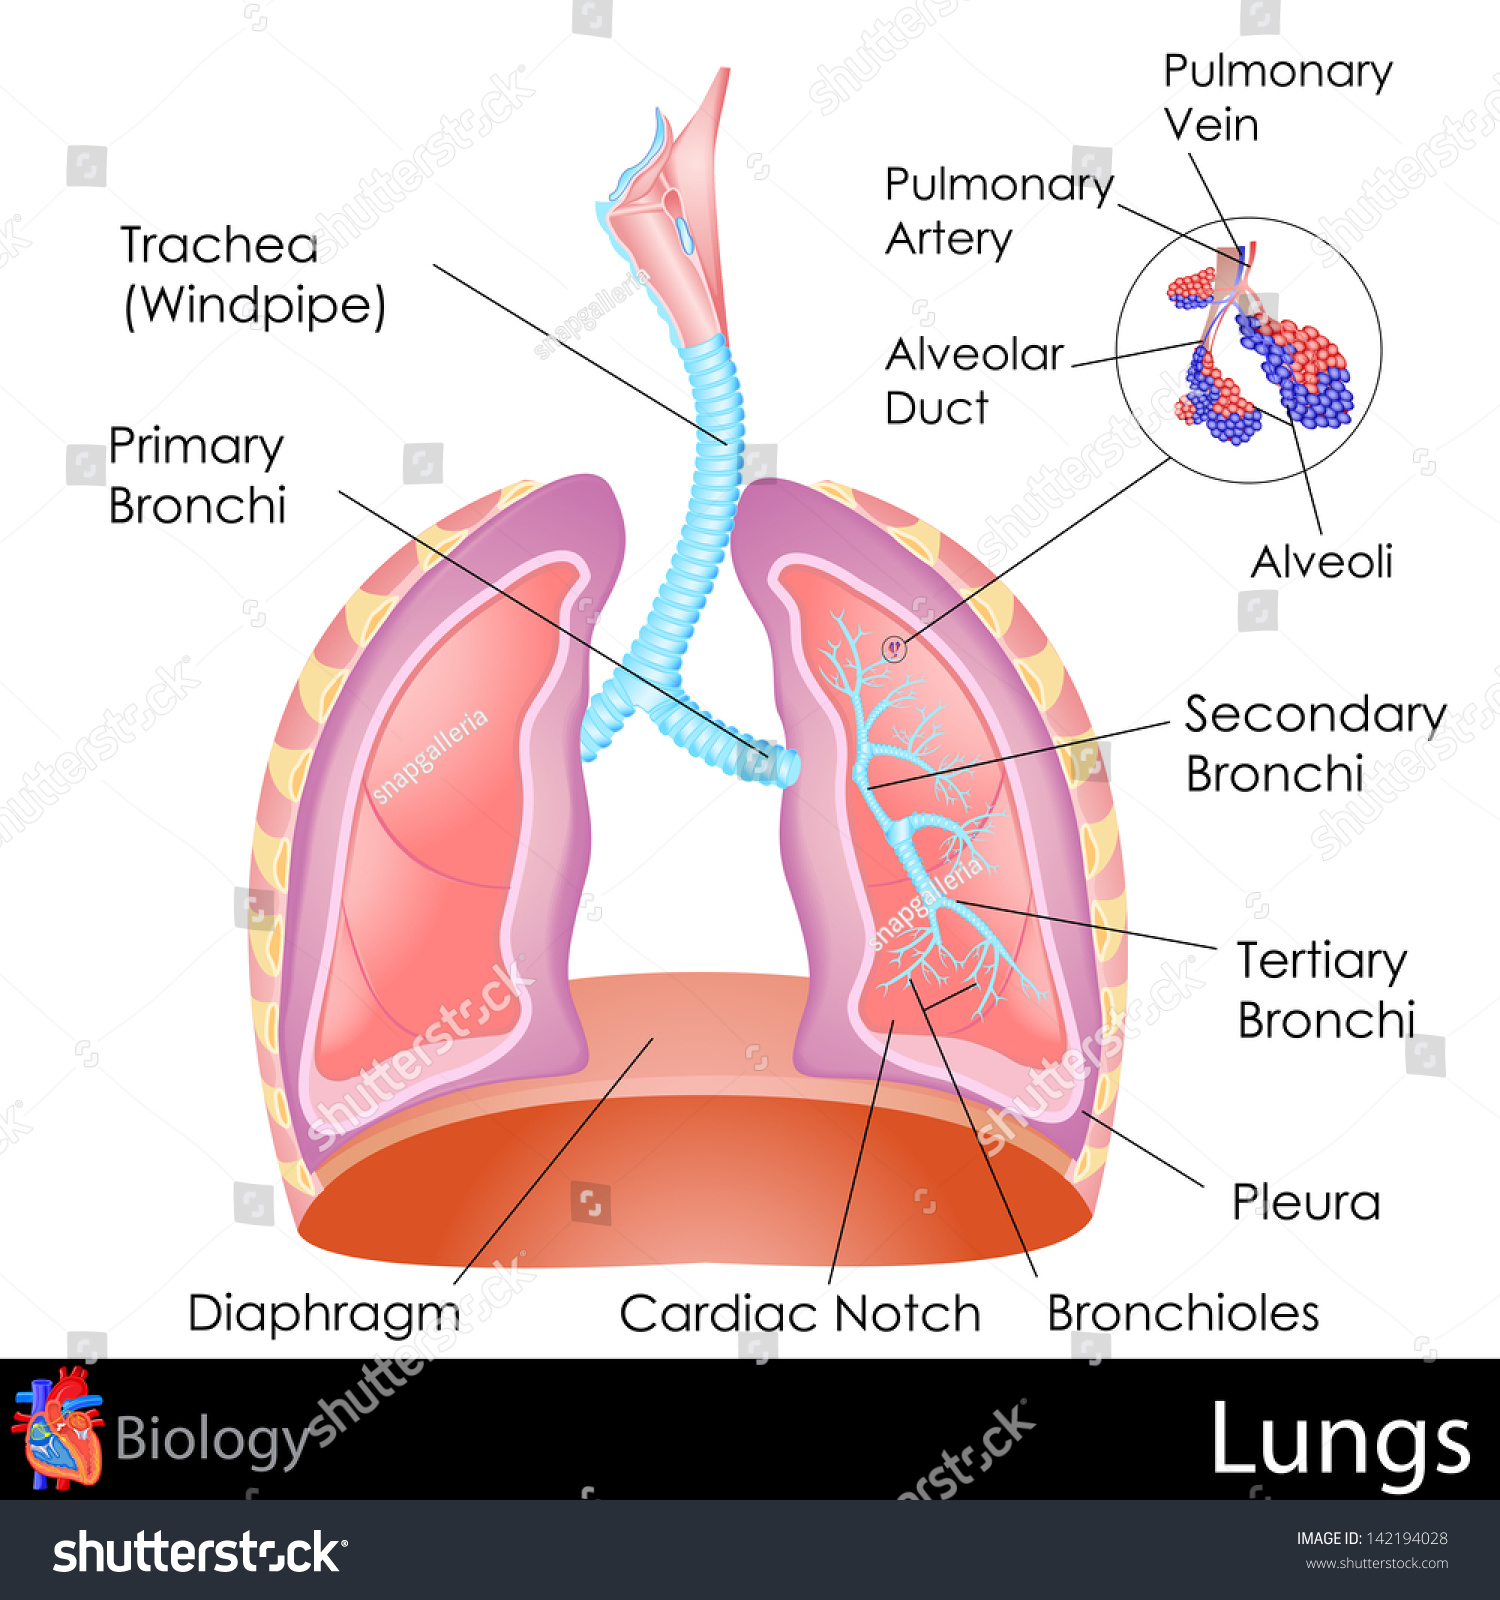 easy to edit vector illustration of human lungs diagram  : human lungs diagram - findchart.co